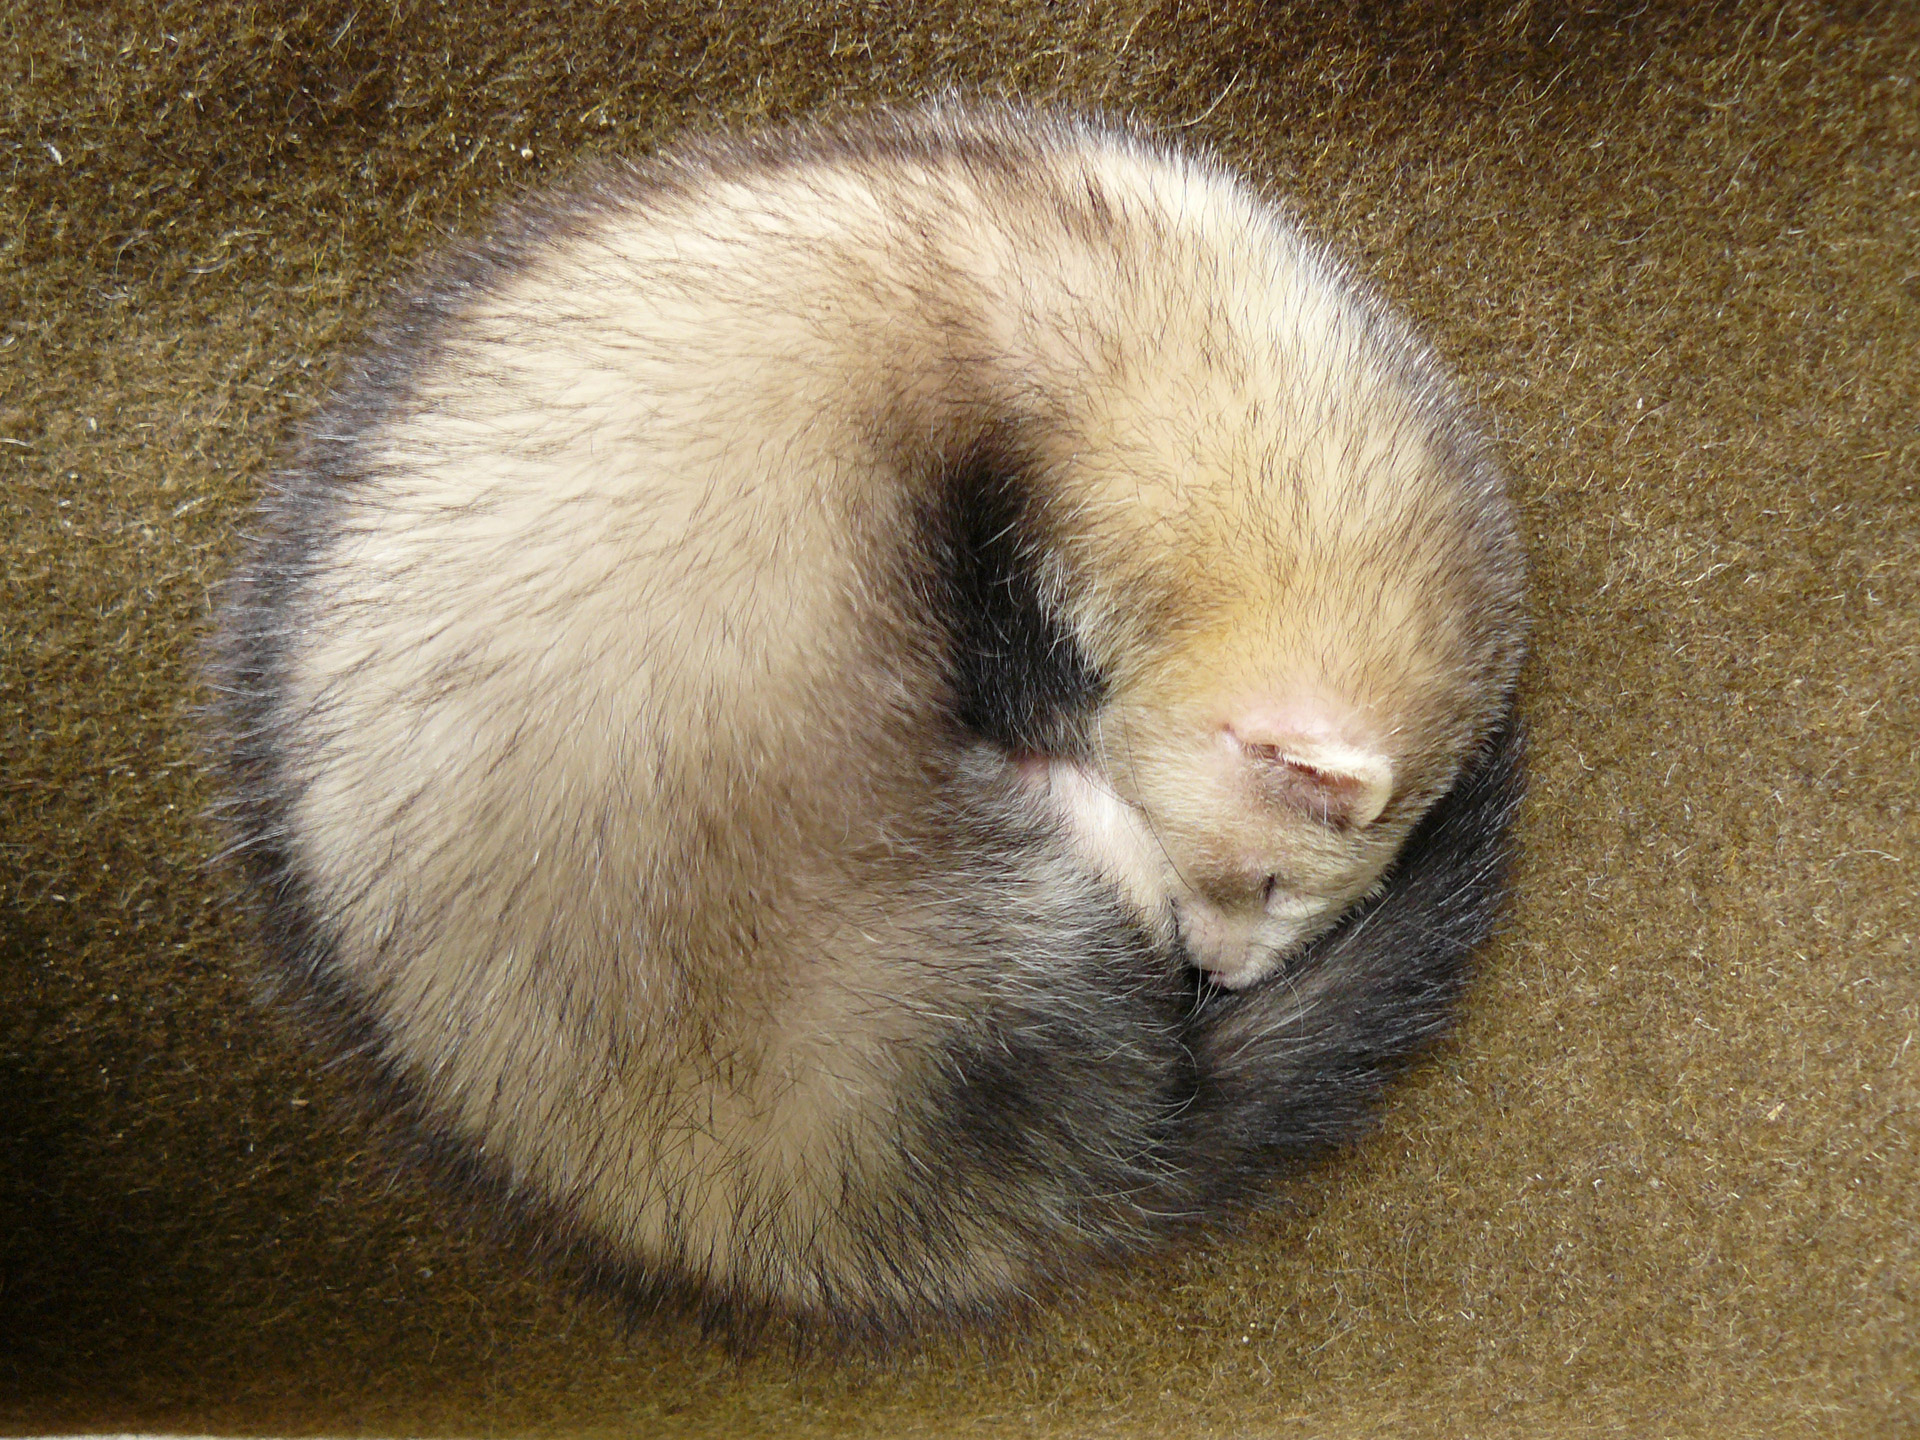 Ferret in a ball